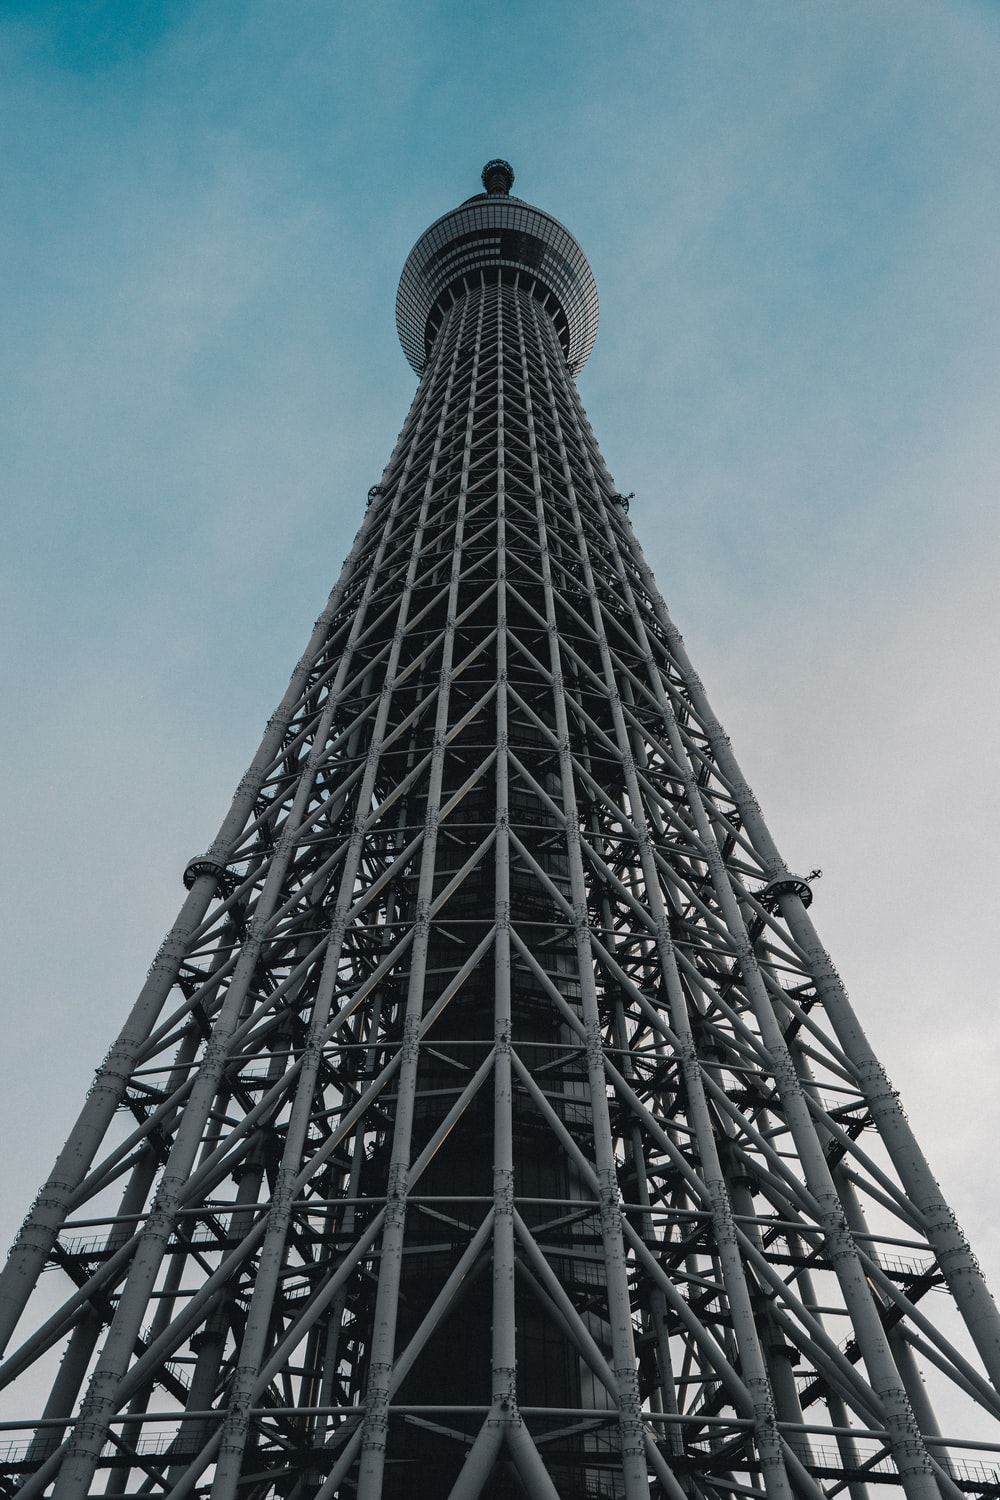 black and white tower under blue sky during daytime